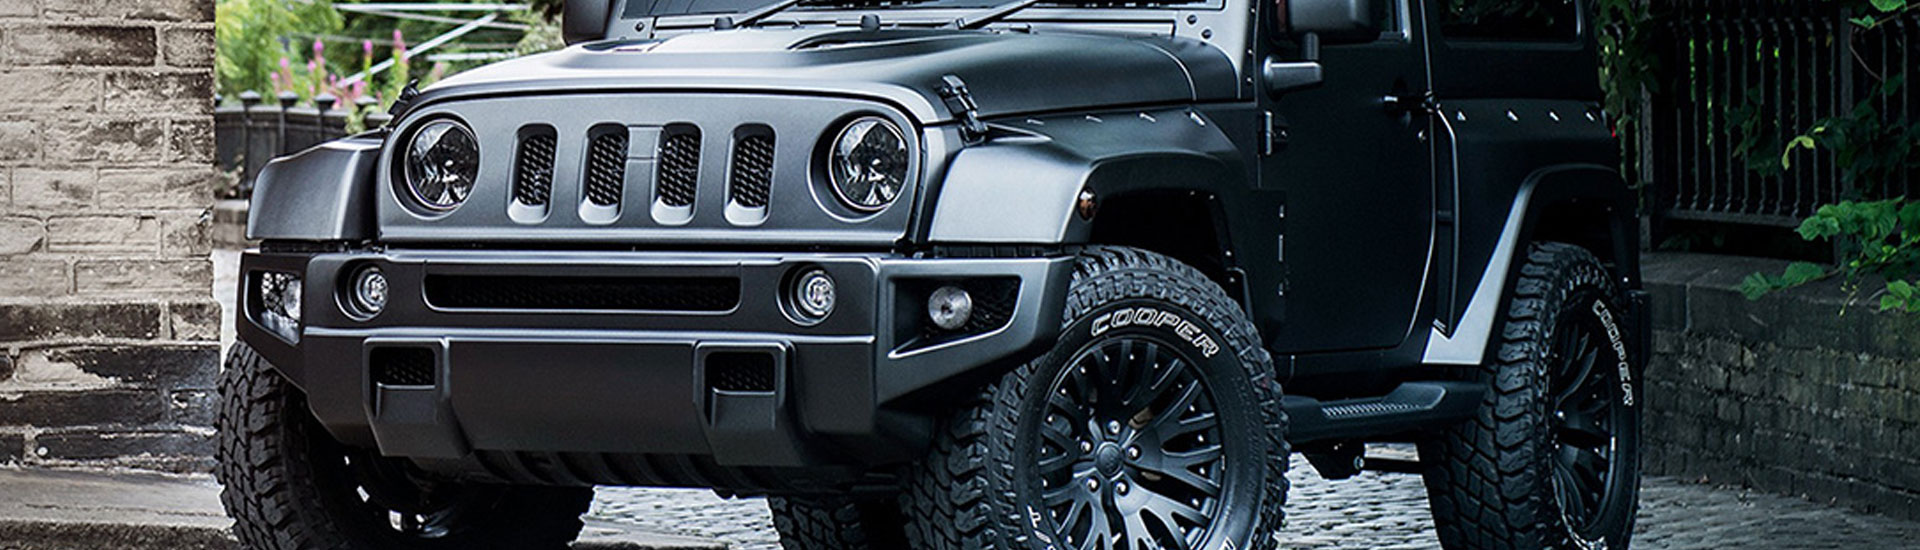 Jeep Headlight Tint Covers